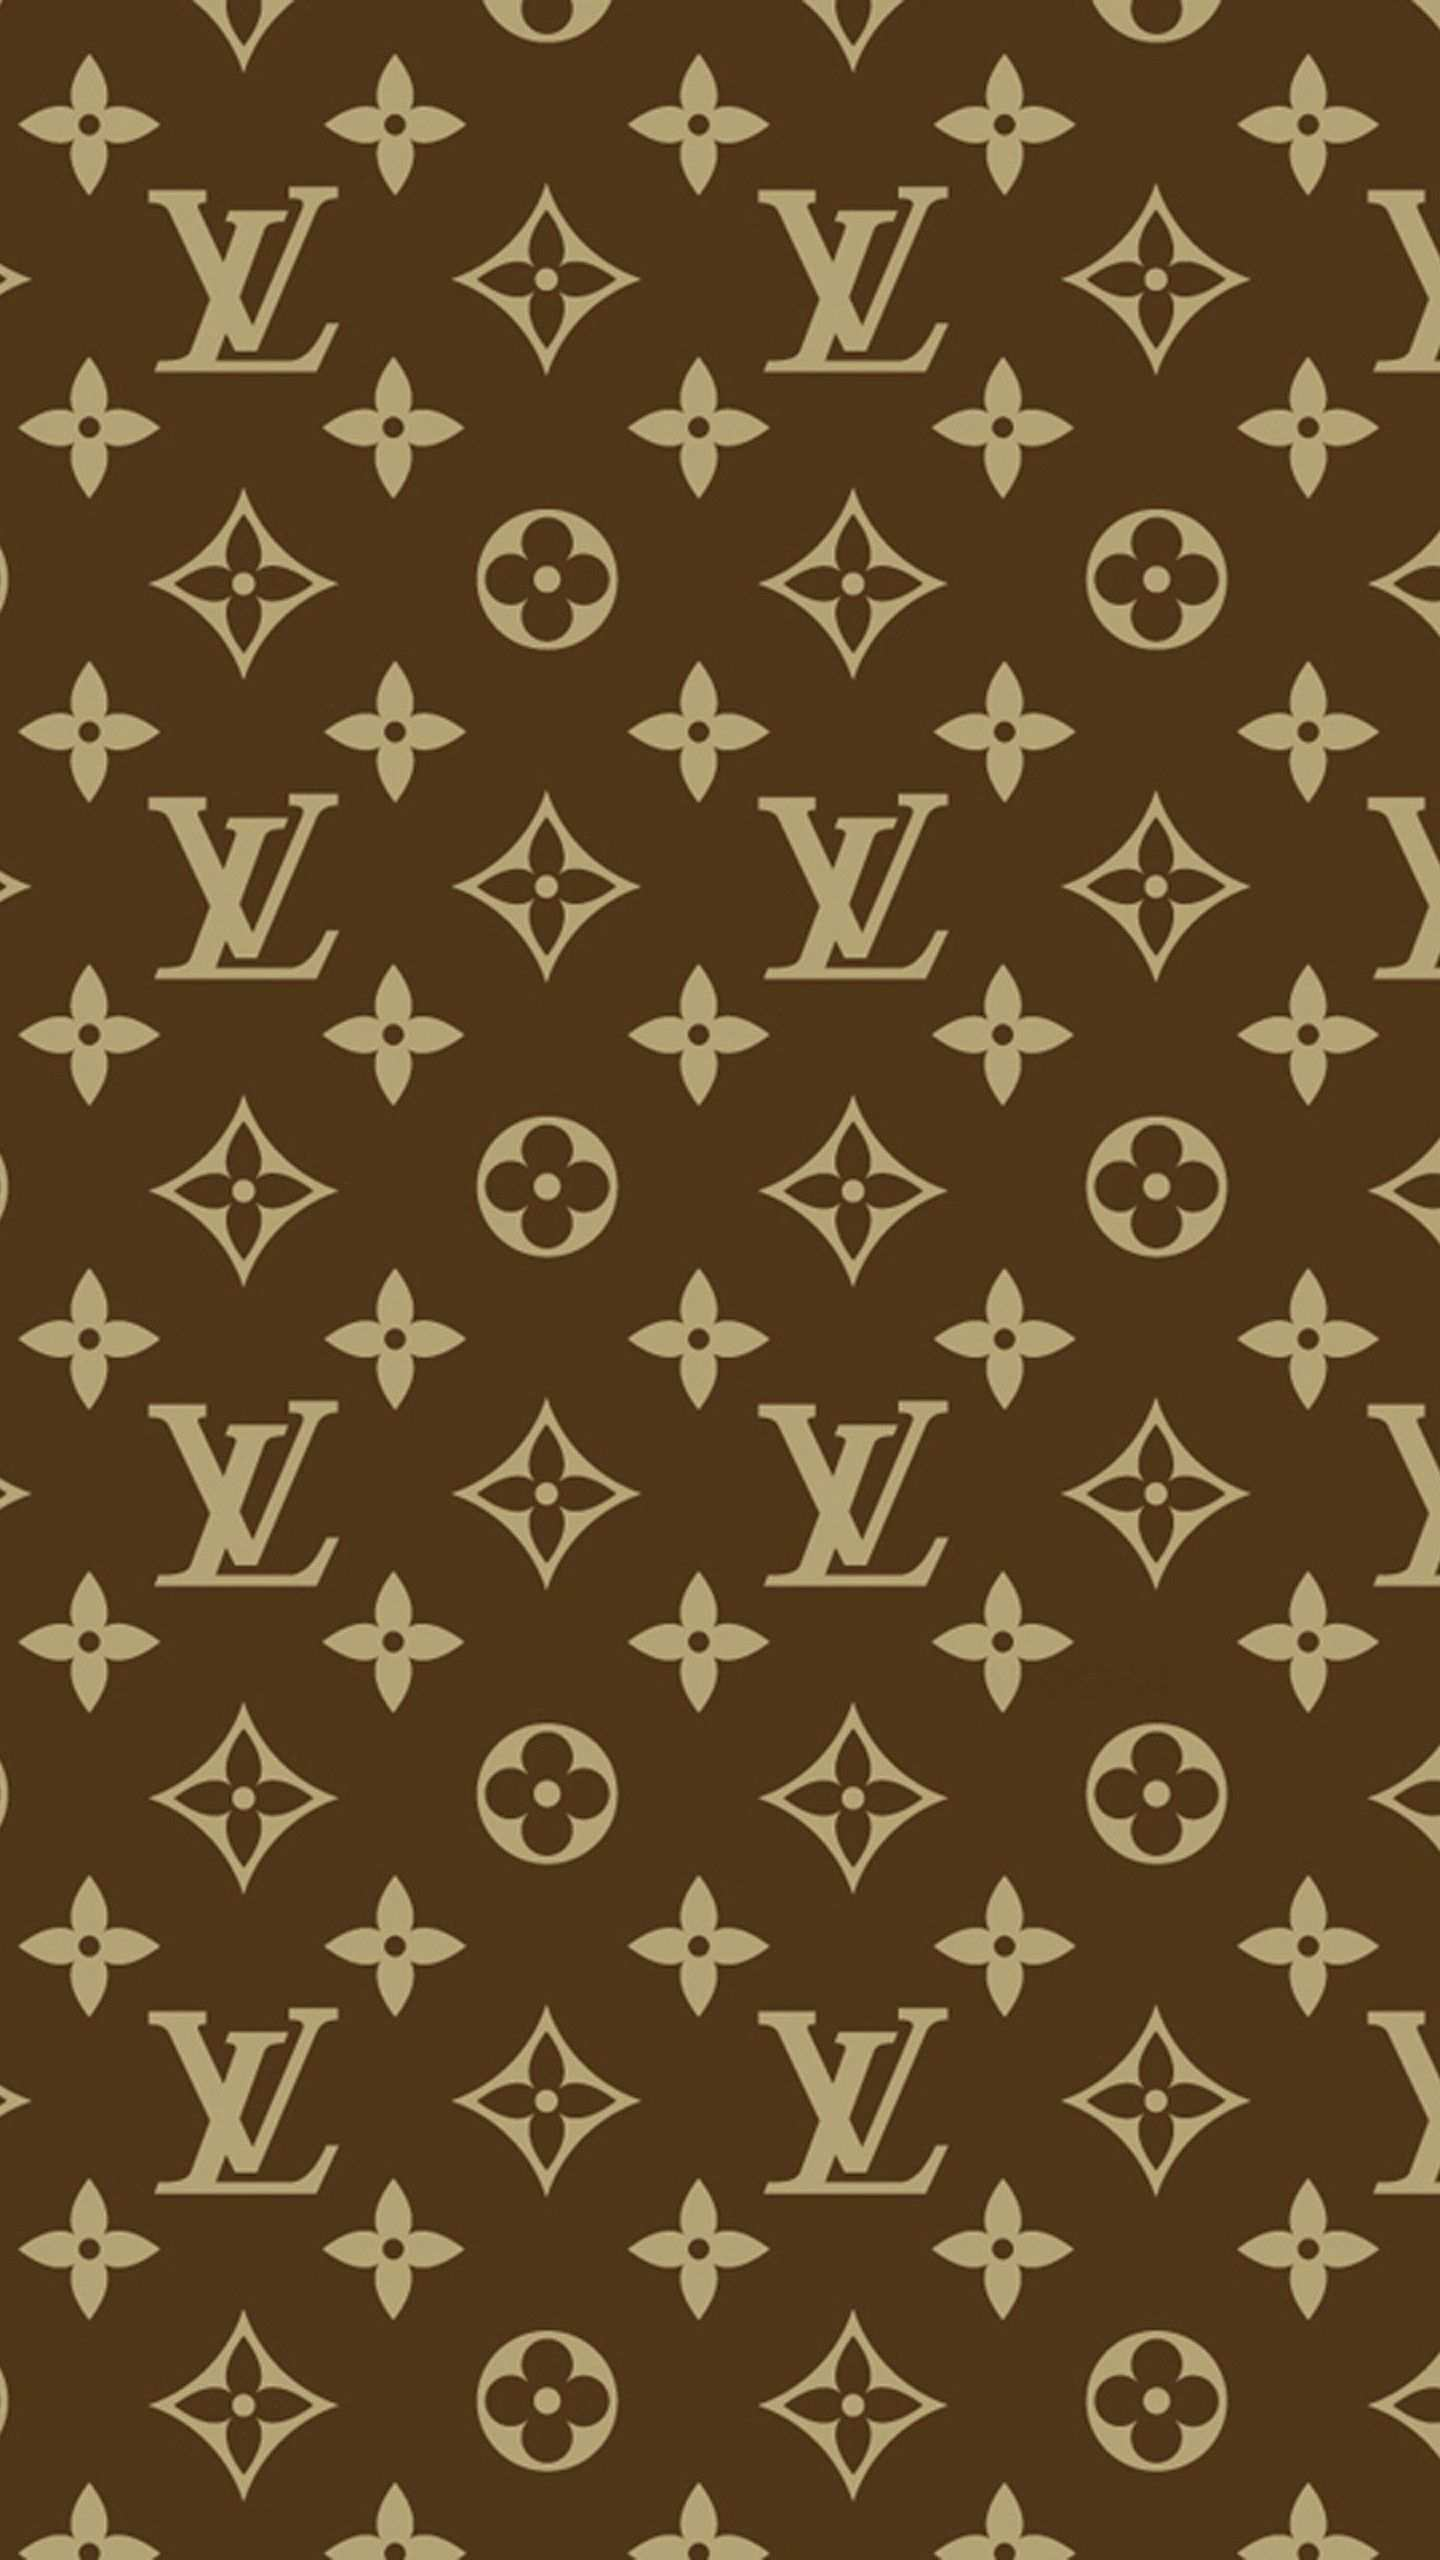 1440x2560 Louis Vuitton Brown Galaxy Note 4 Wallpapers Hintergrundbilder Iphone Hintergrund Iphone Hintergrundbilder